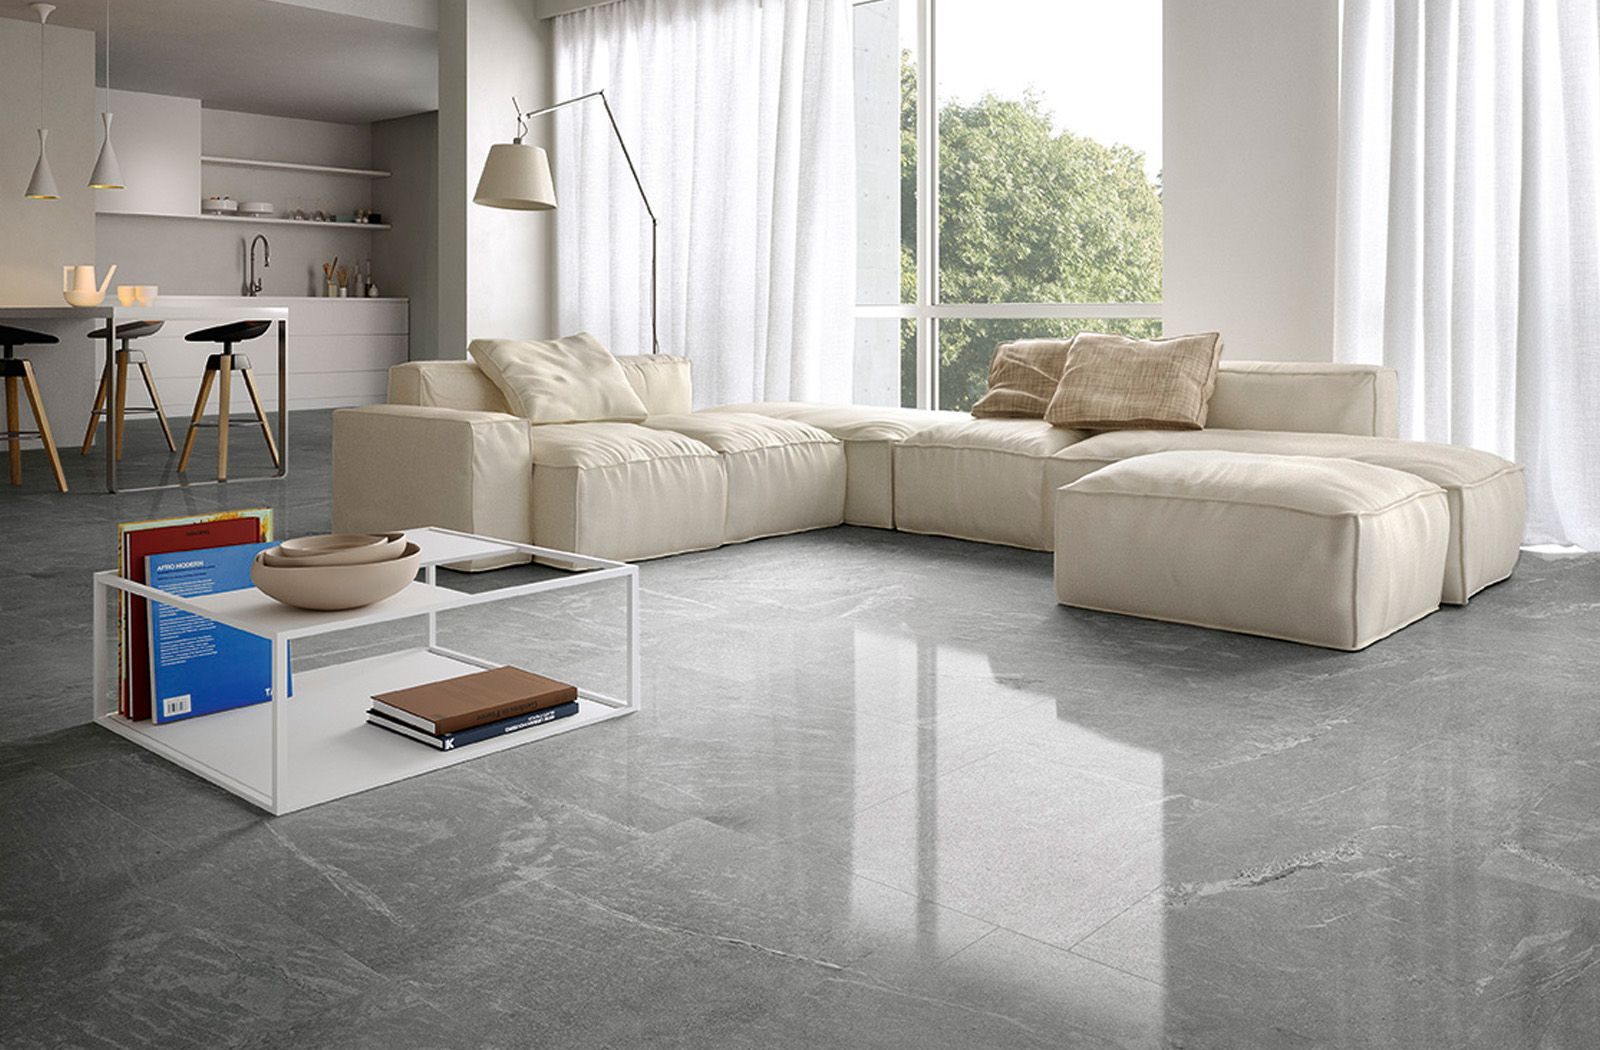 Modern living room idea with floor tiles from ceramiche caesar modern living room idea with floor tiles from ceramiche caesar portraits tile collection doublecrazyfo Choice Image